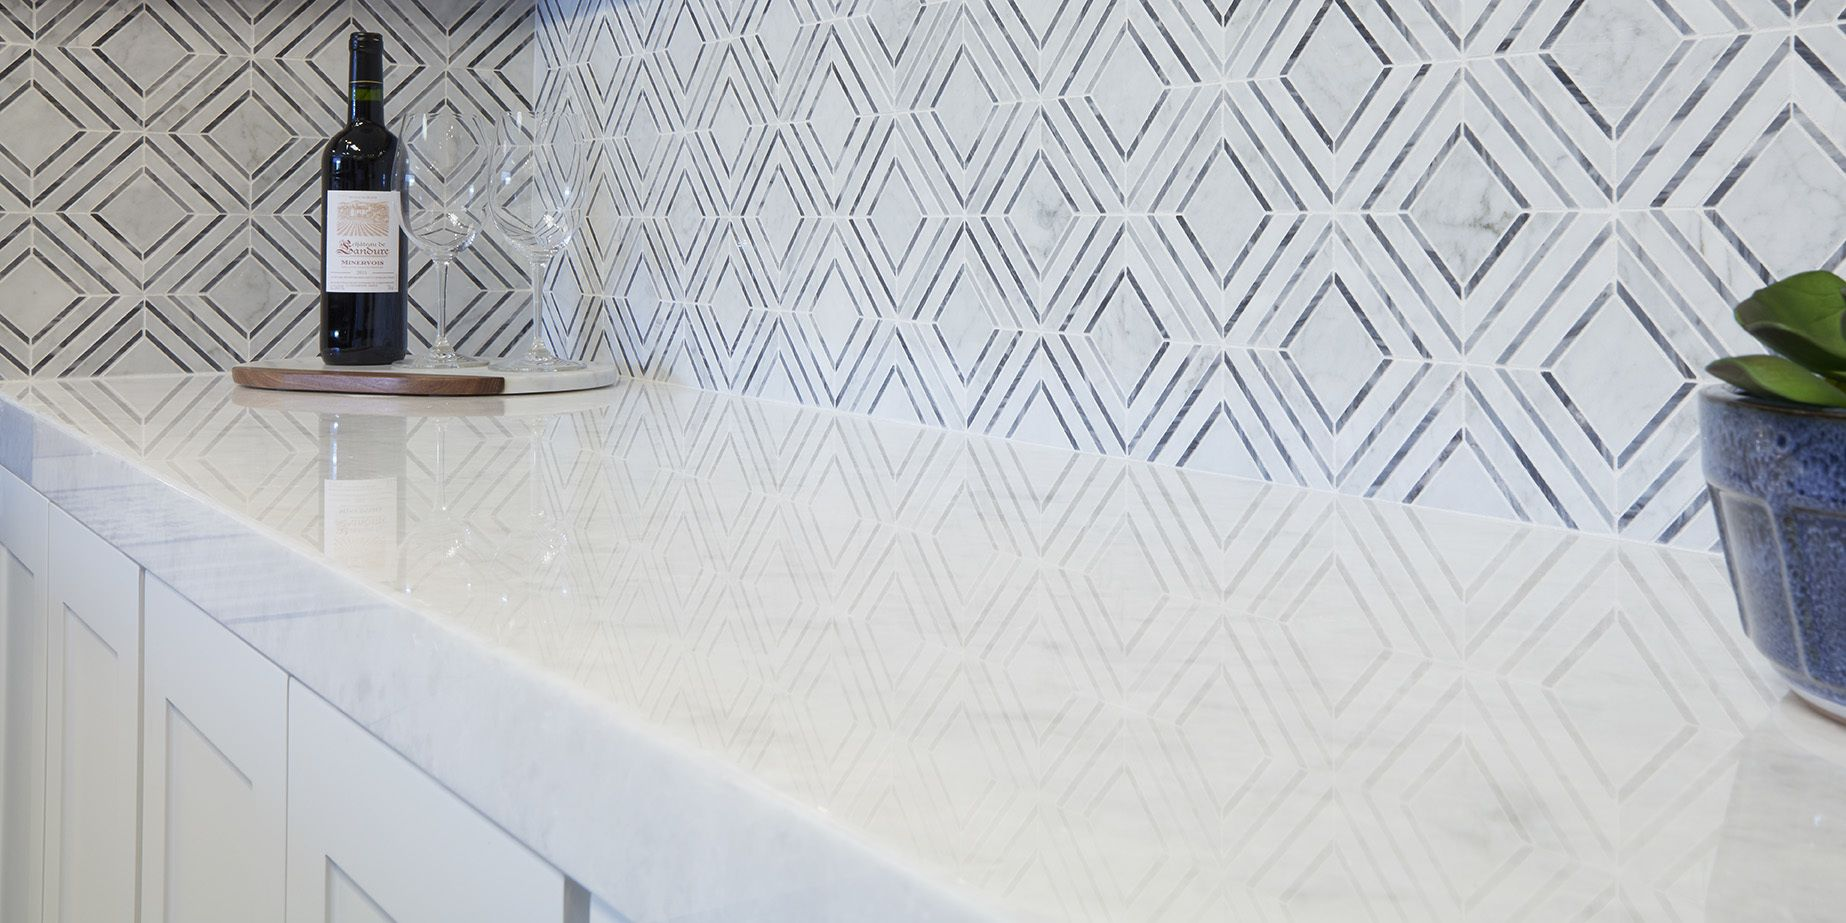 Are you loving this backsplash as much as we are our new stone mesh